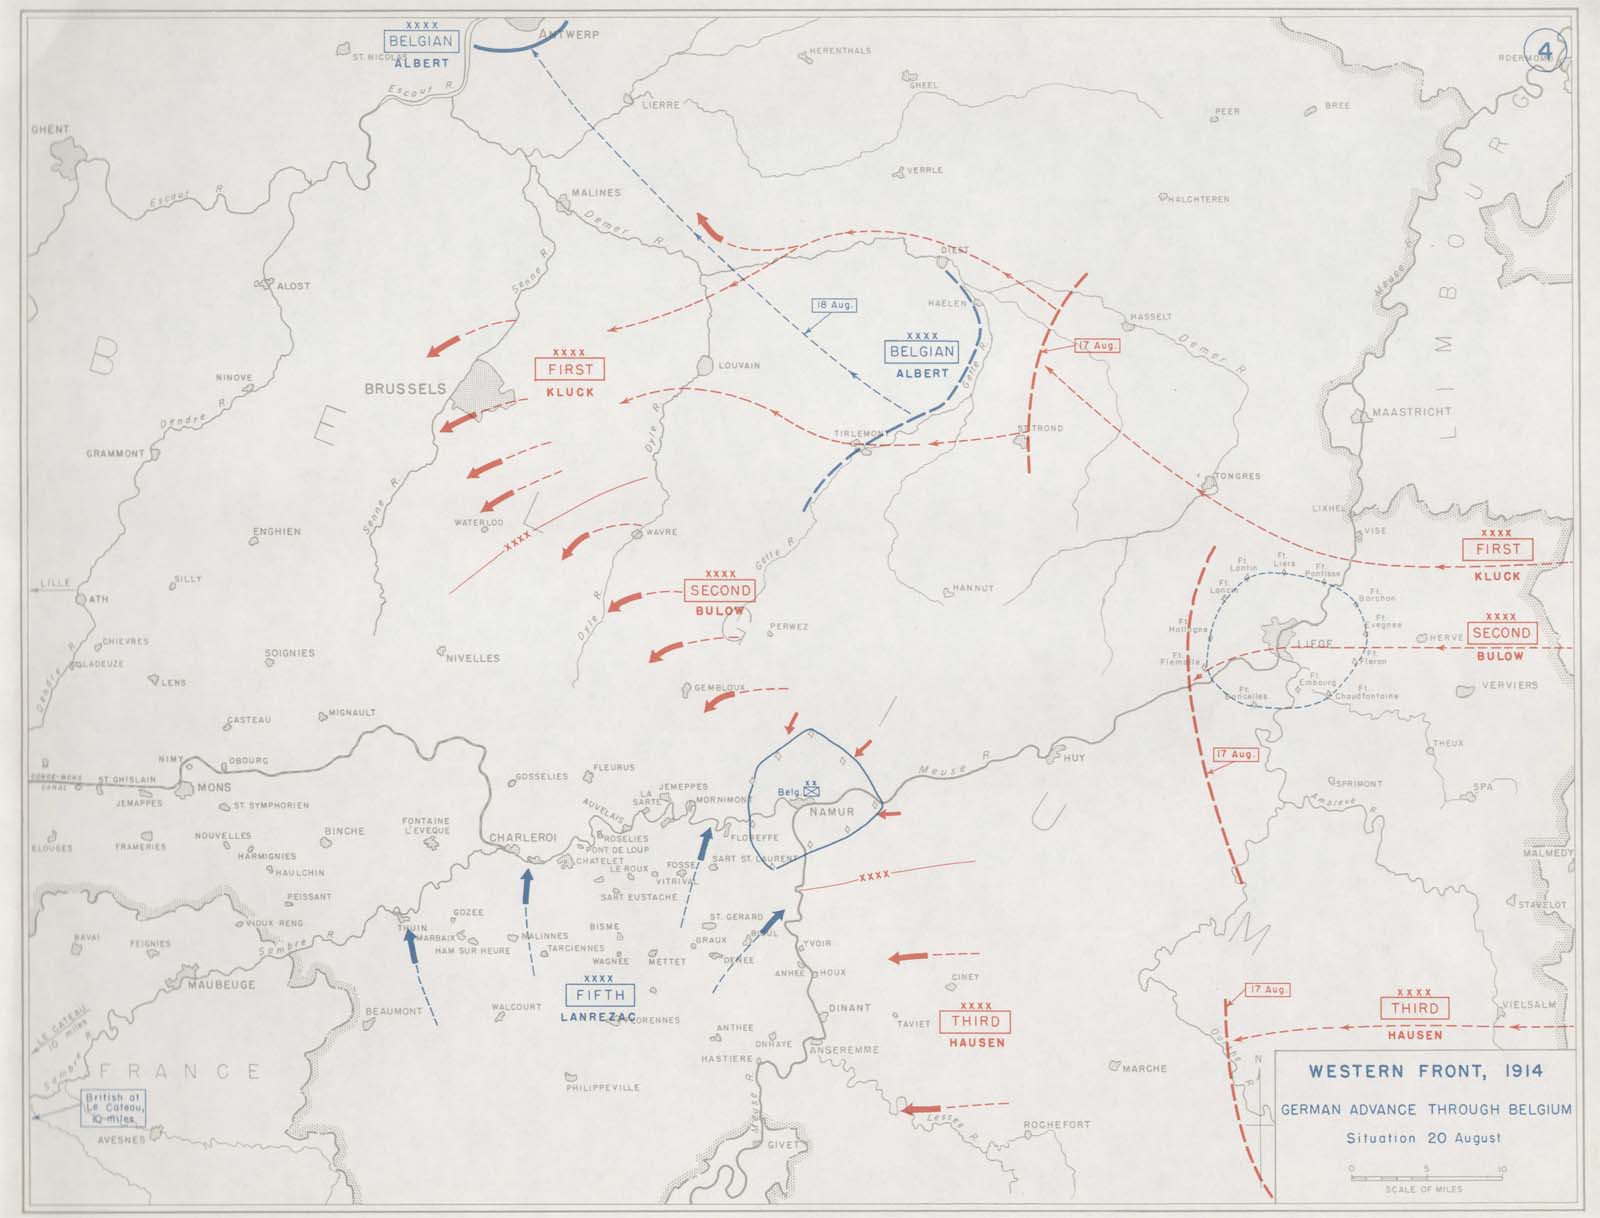 click here to view a map charting the progress of the german invasion of belgium in august 1914